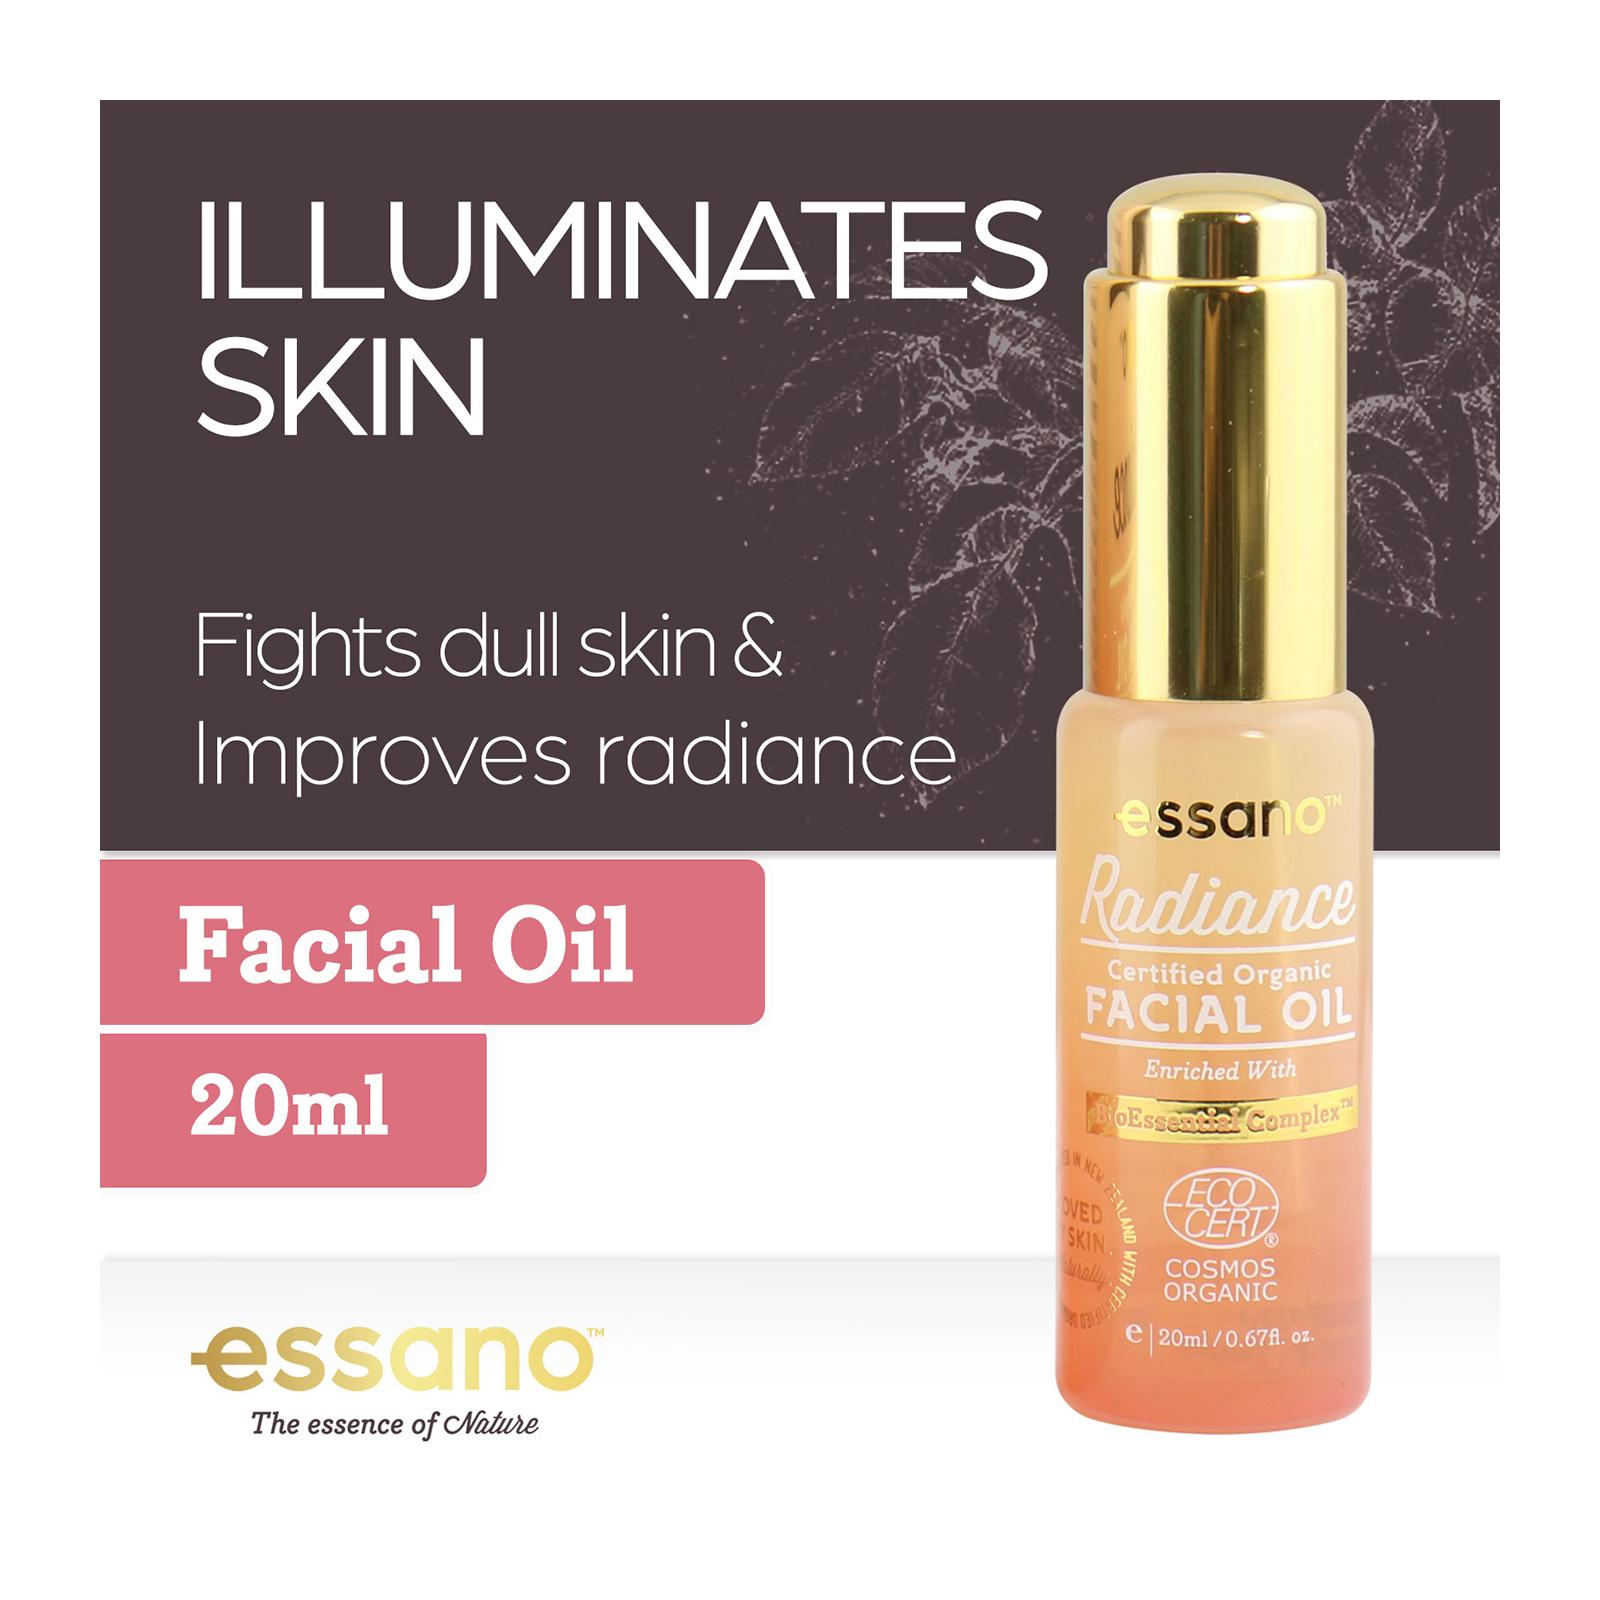 Essano Certified Organic Radiance Facial Oil - By Corlison